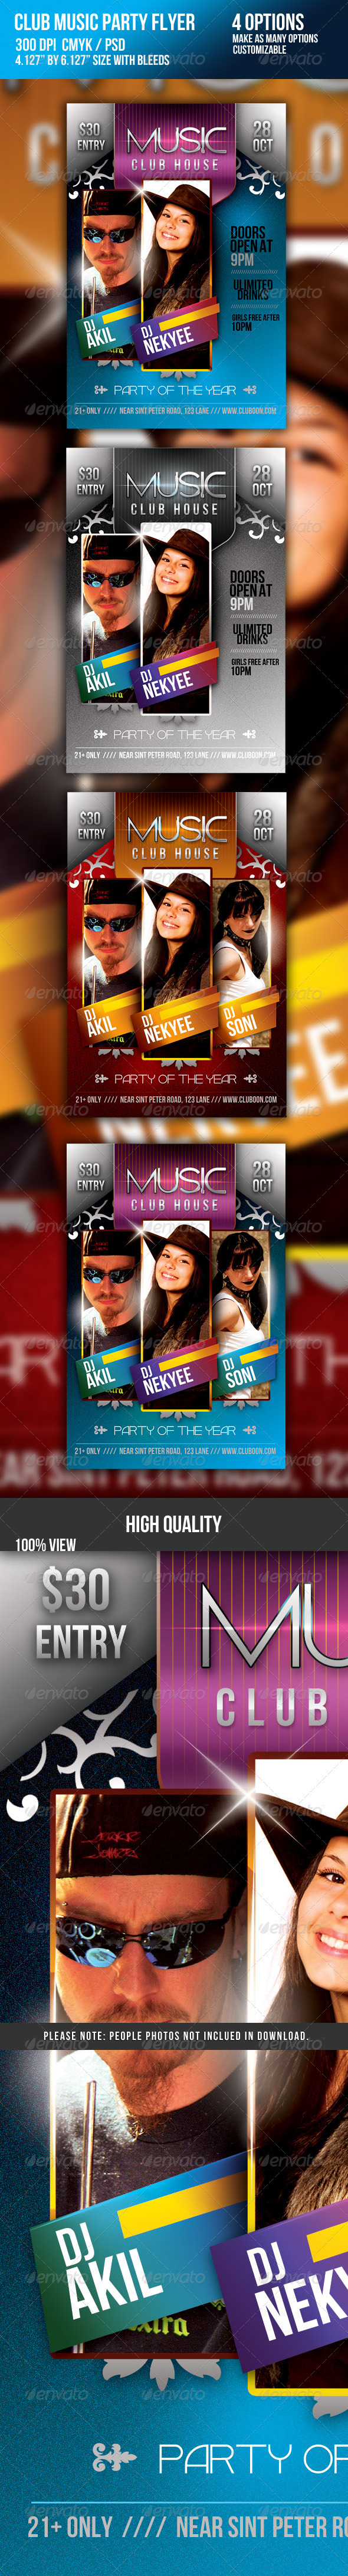 Club Music DJ Night Party Flyer - Clubs & Parties Events